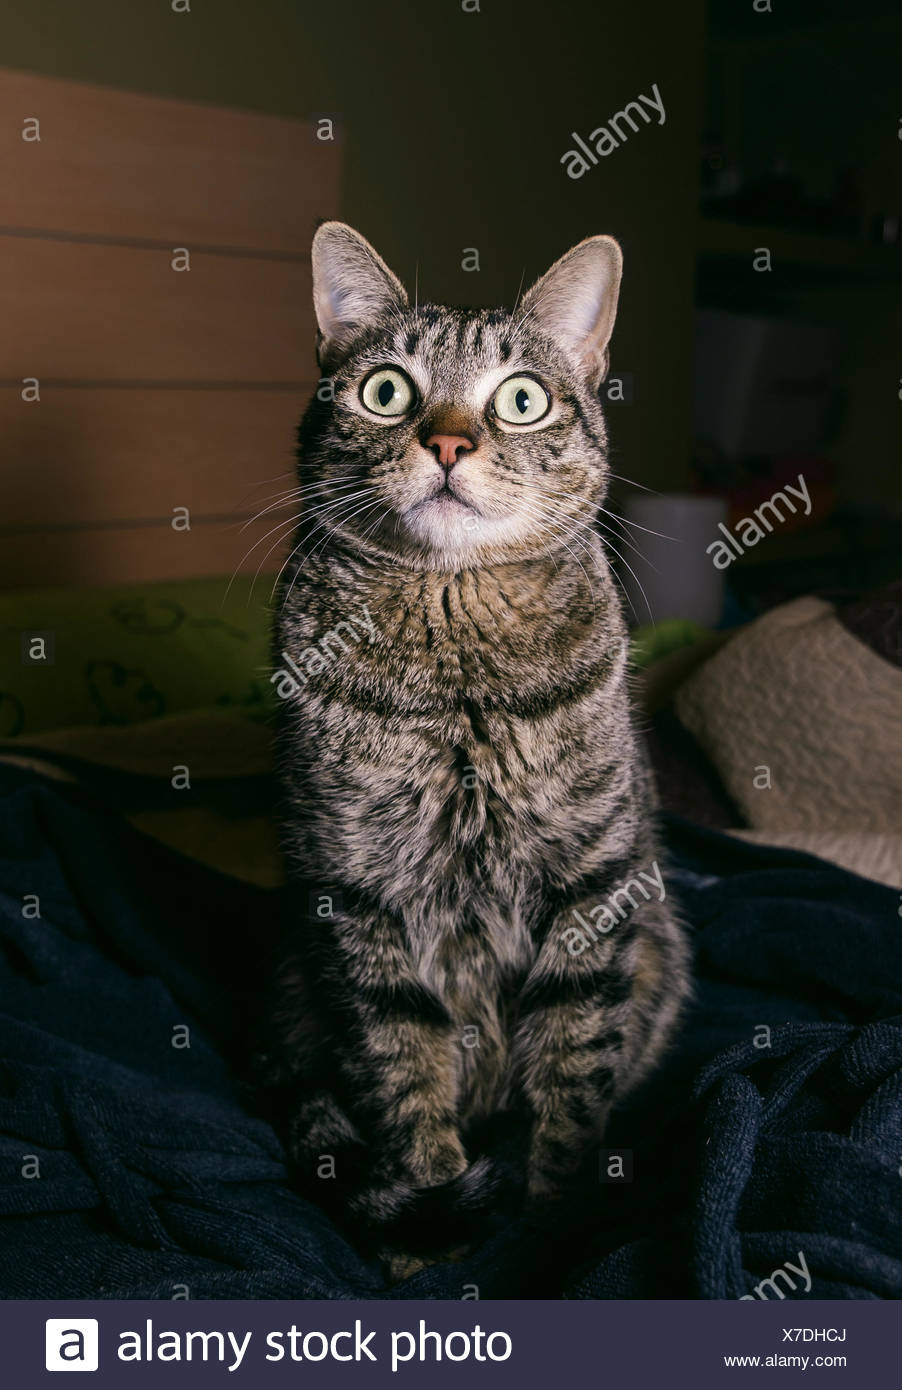 Portrait of tabby cat with eyes wide open - Stock Image